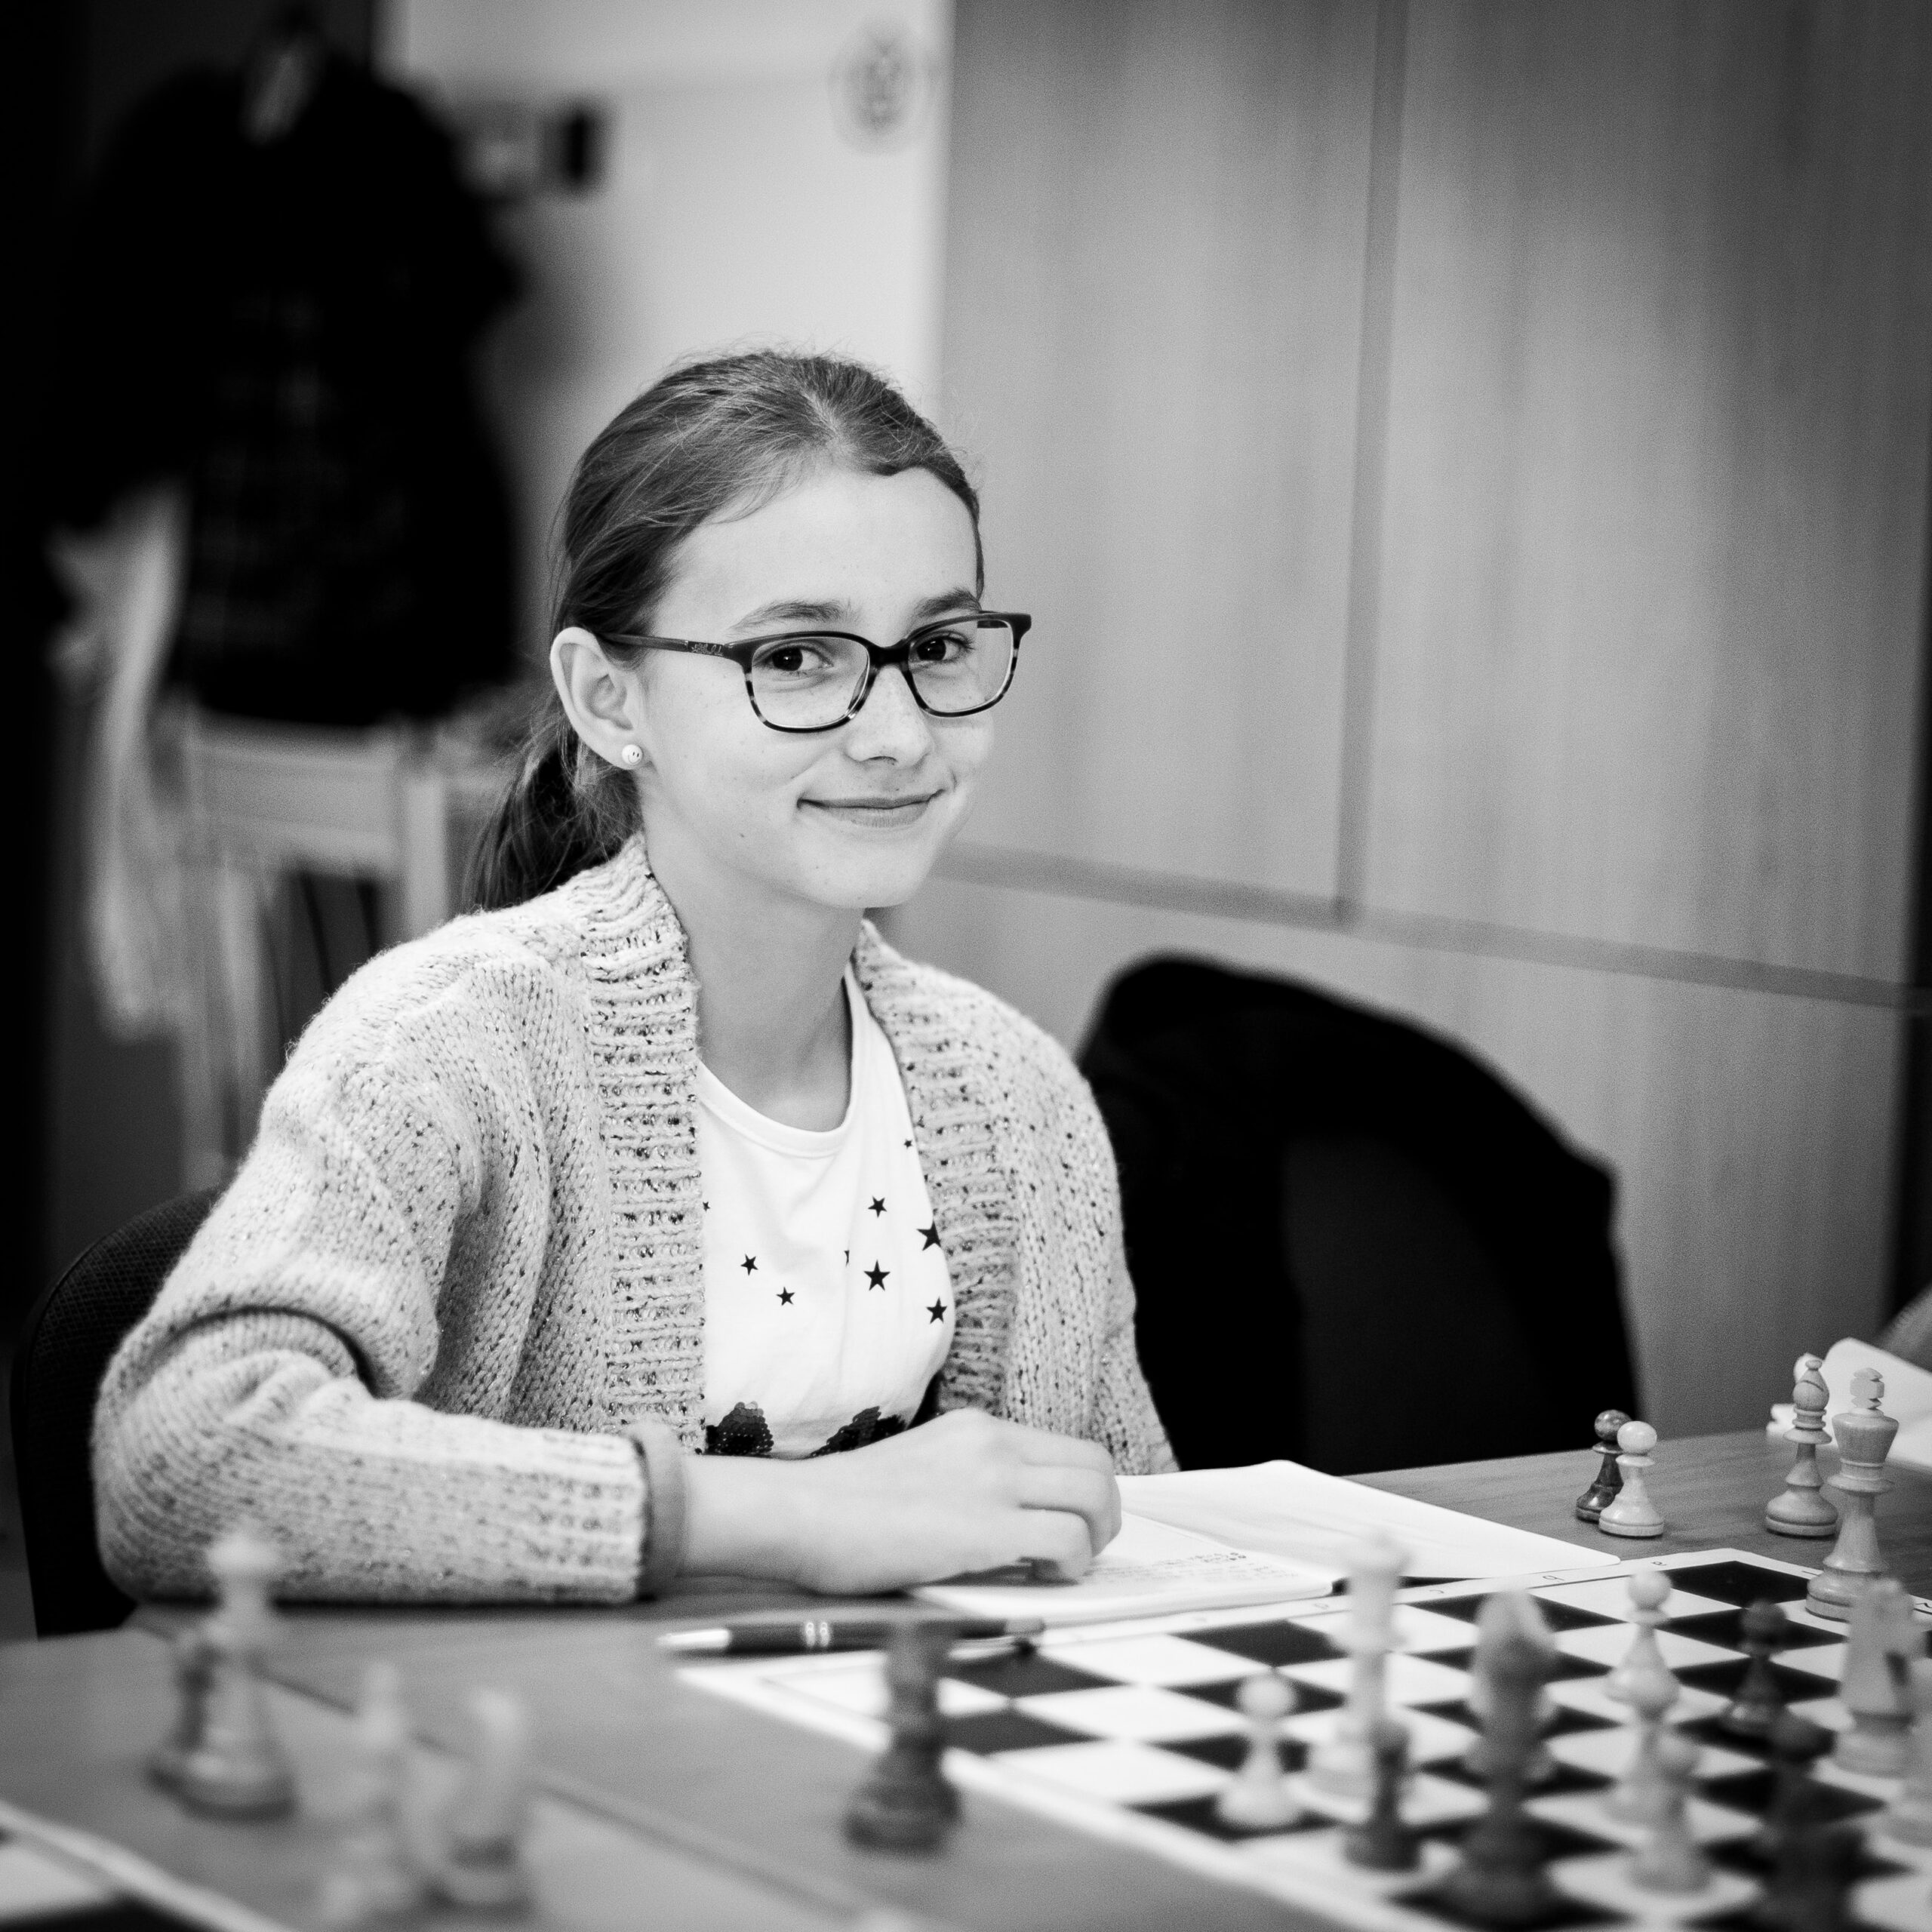 michal-vrba-young lady sitting at chess table-unsplash (1)